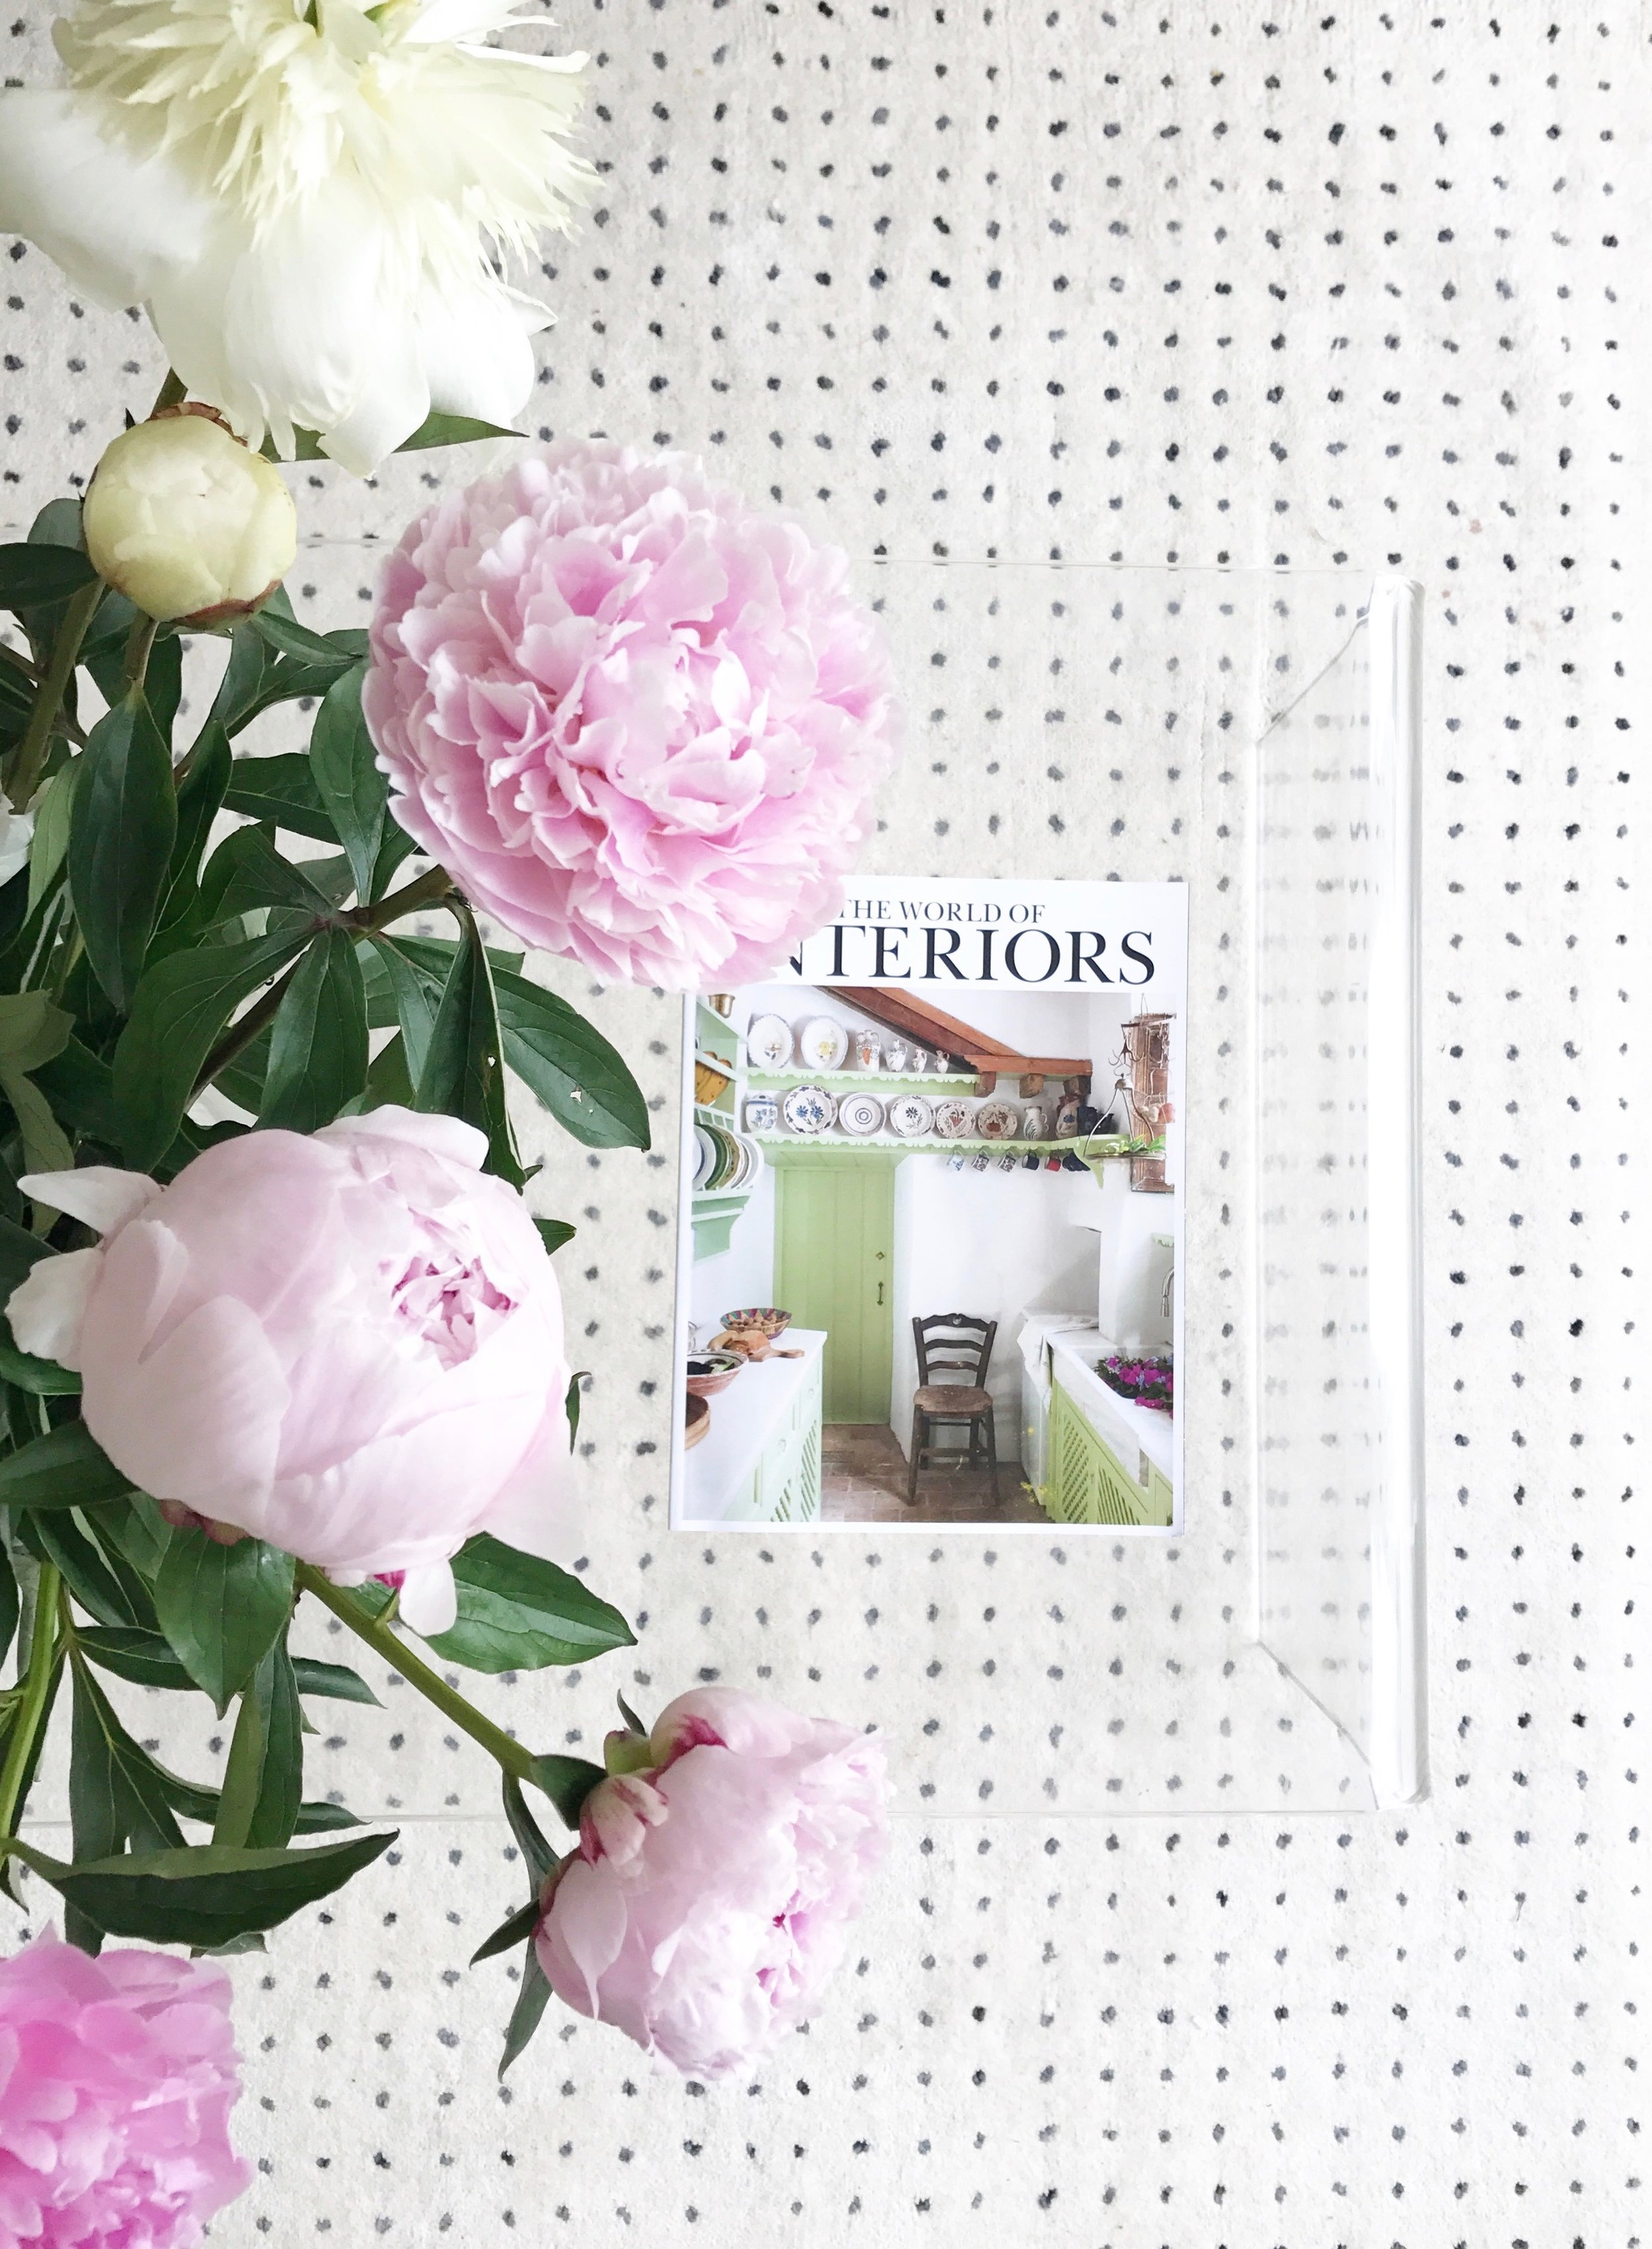 Peony flowers from Freddie's Flowers - a review by Camilla Pearl Blog.